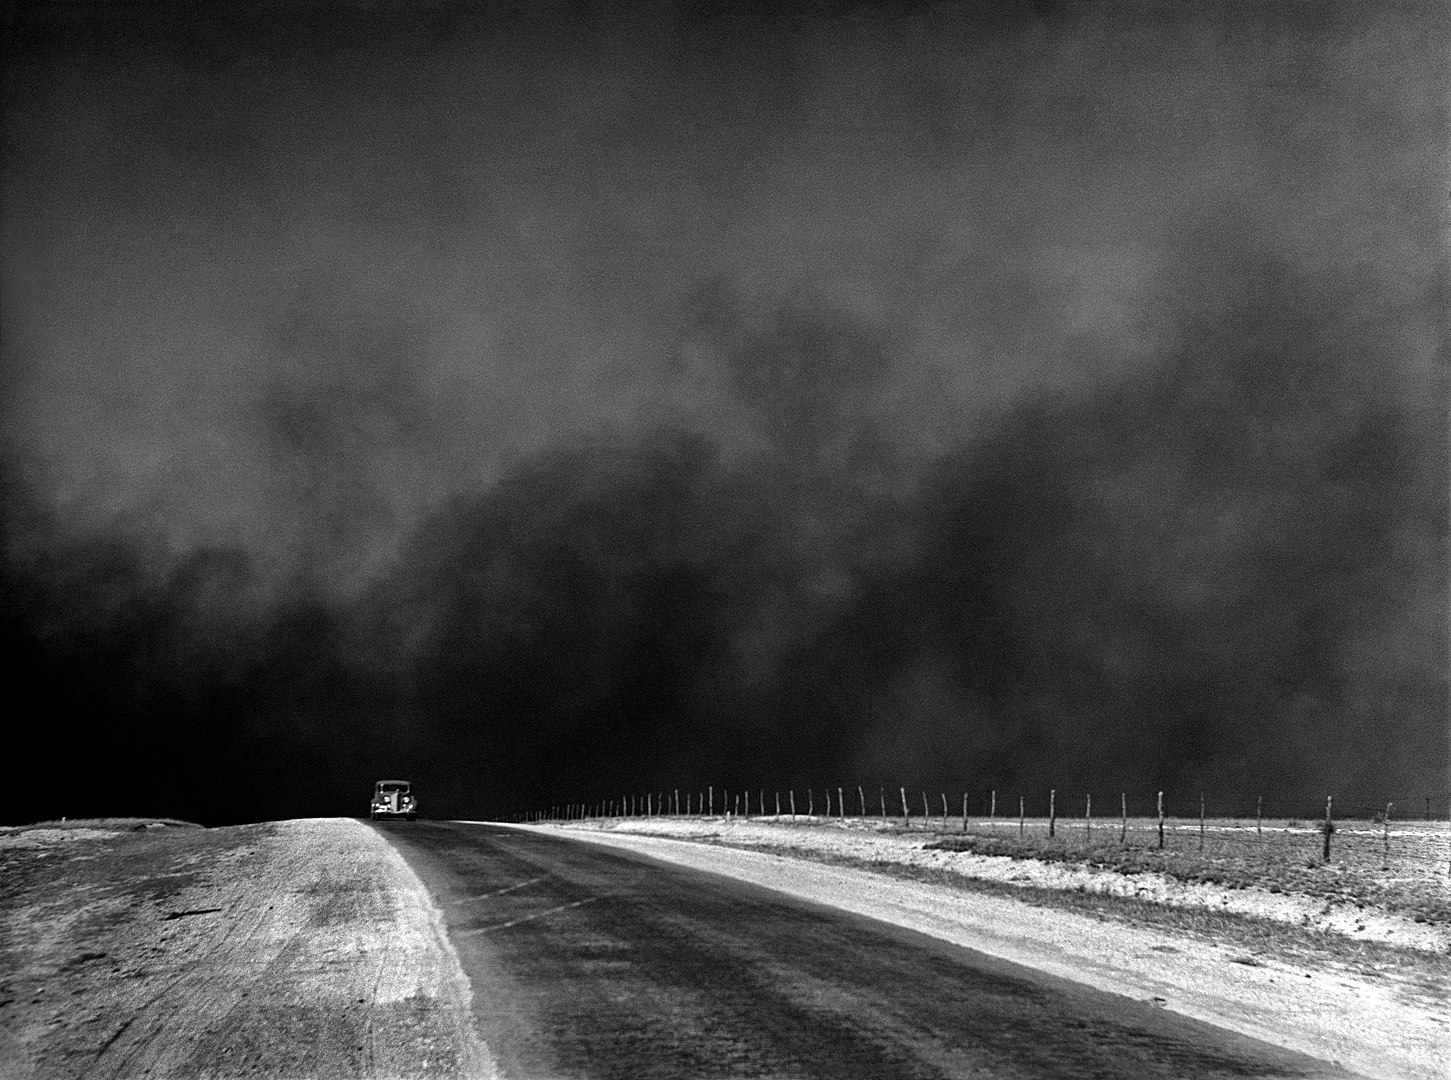 Heavy black clouds of dust rising over the Texas Panhandle, Texas, c. 1936